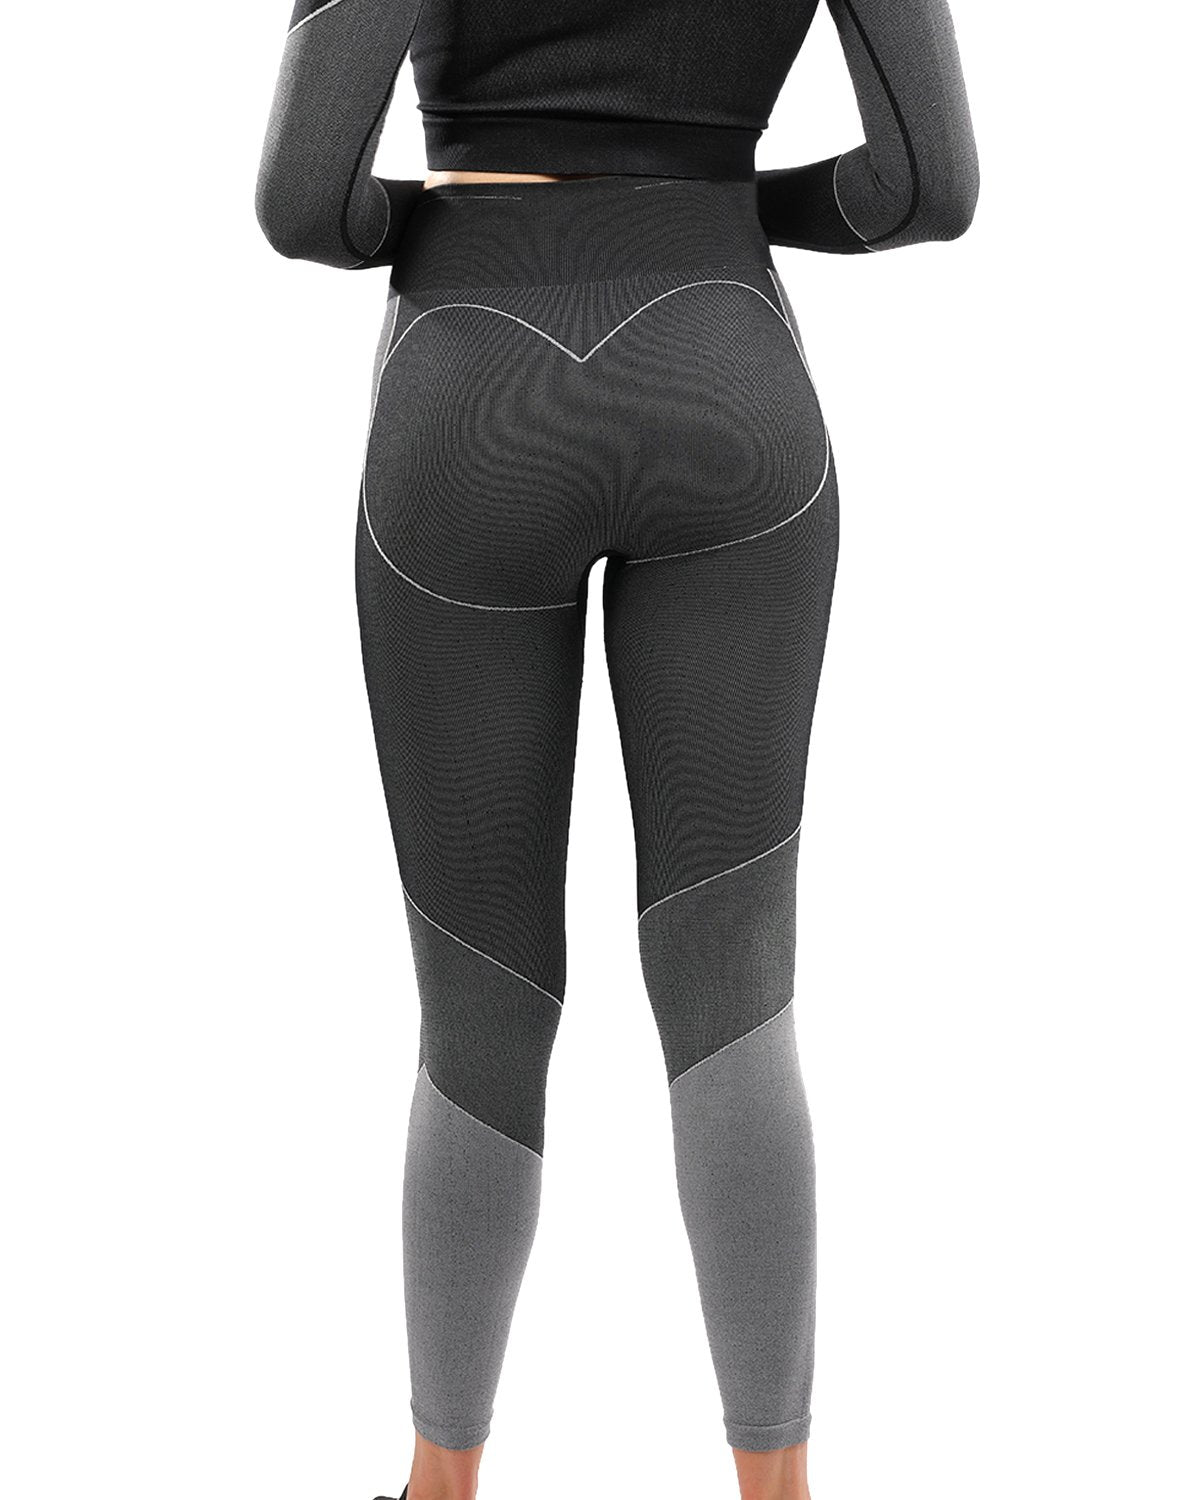 Escolta Seamless Legging - Black - ONCE|NUDE